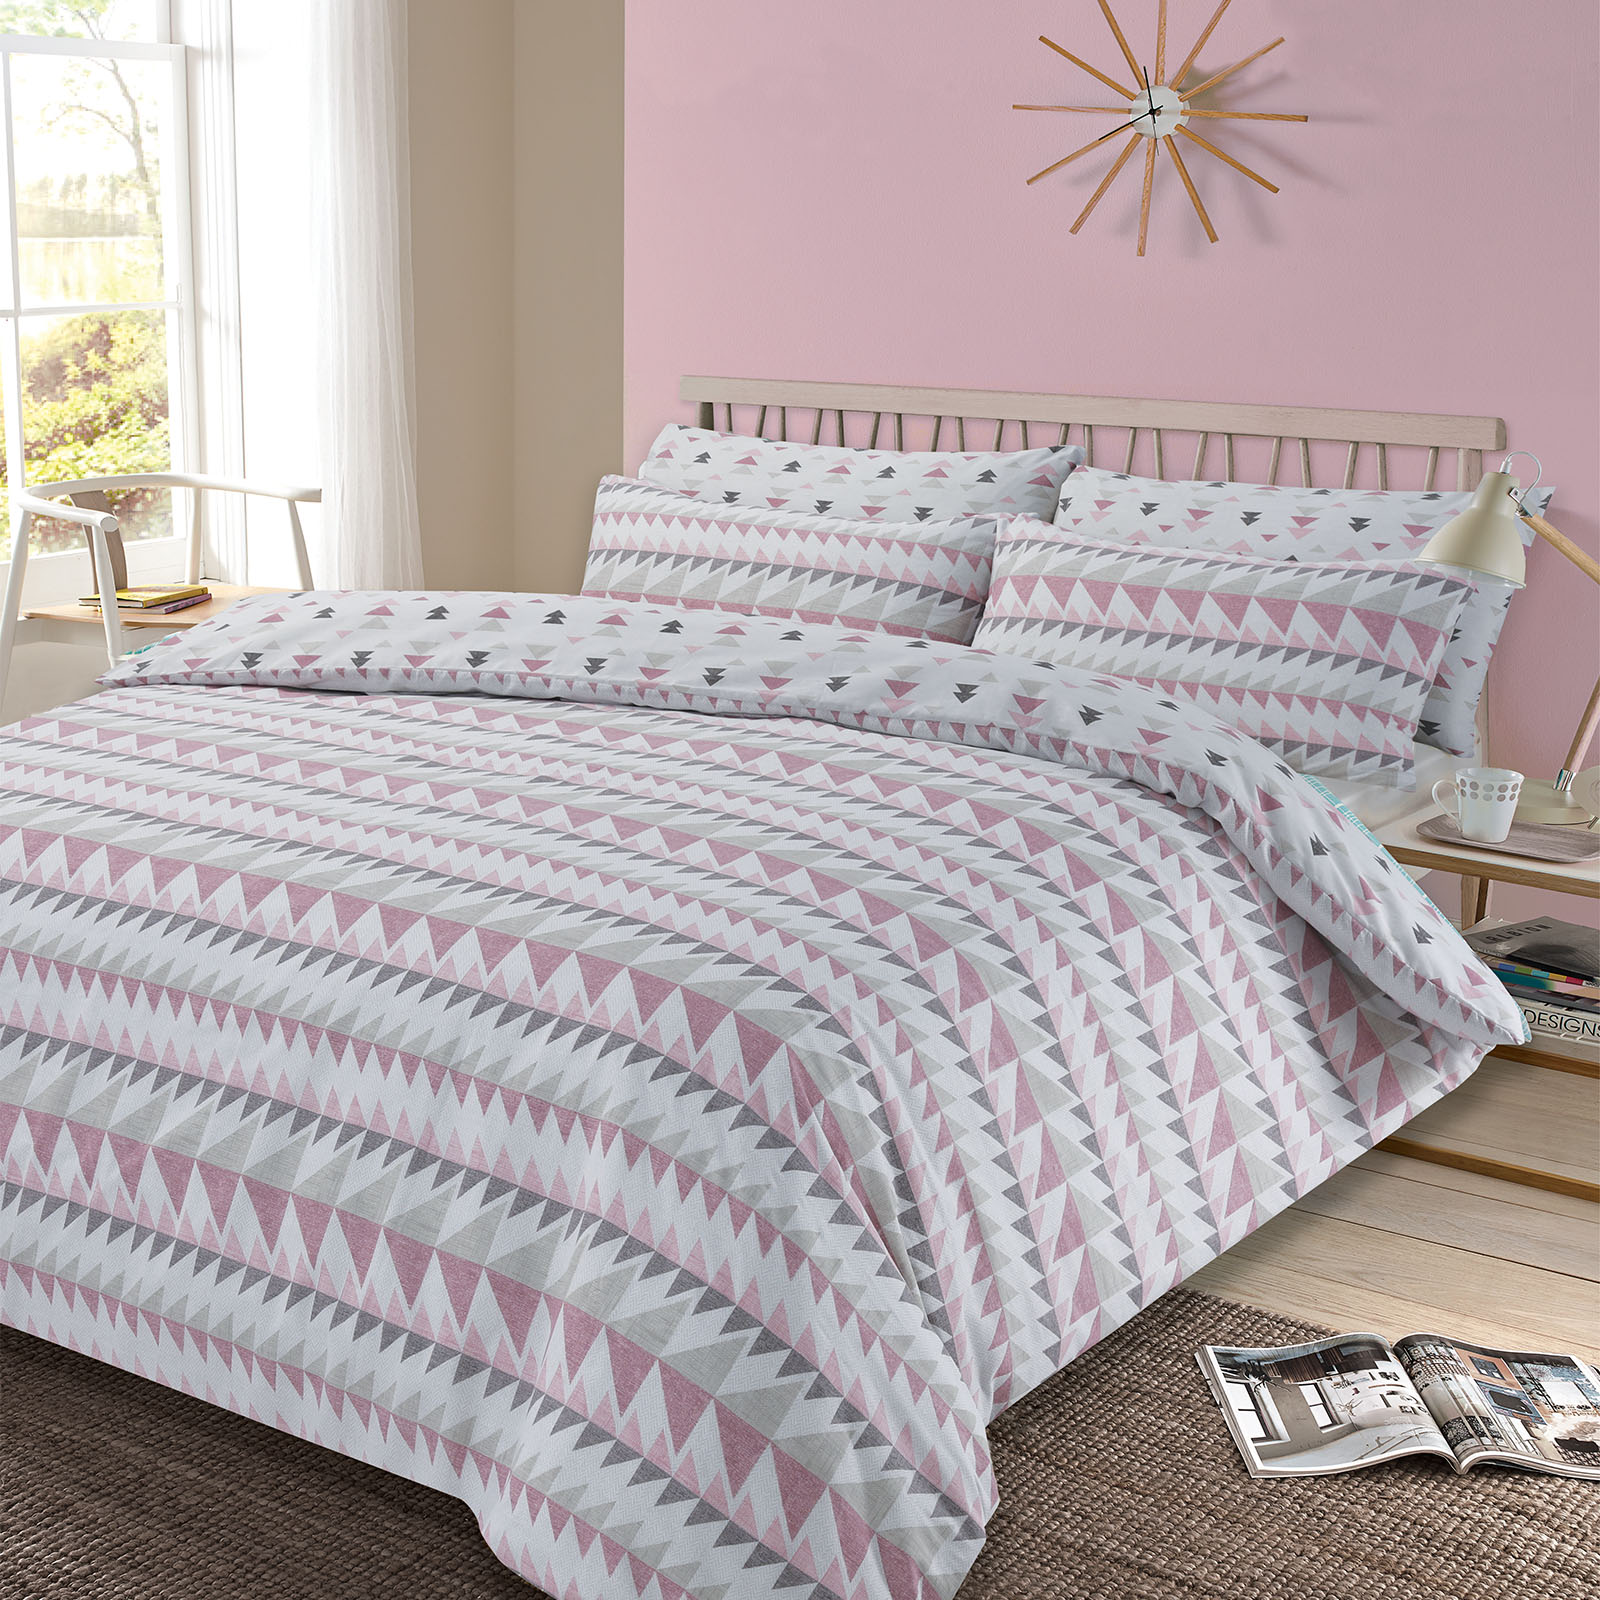 Duvet And Cover Details About Dreamscene Duvet Cover With Pillowcase Geometric Rewind Bedding Set Grey Blush